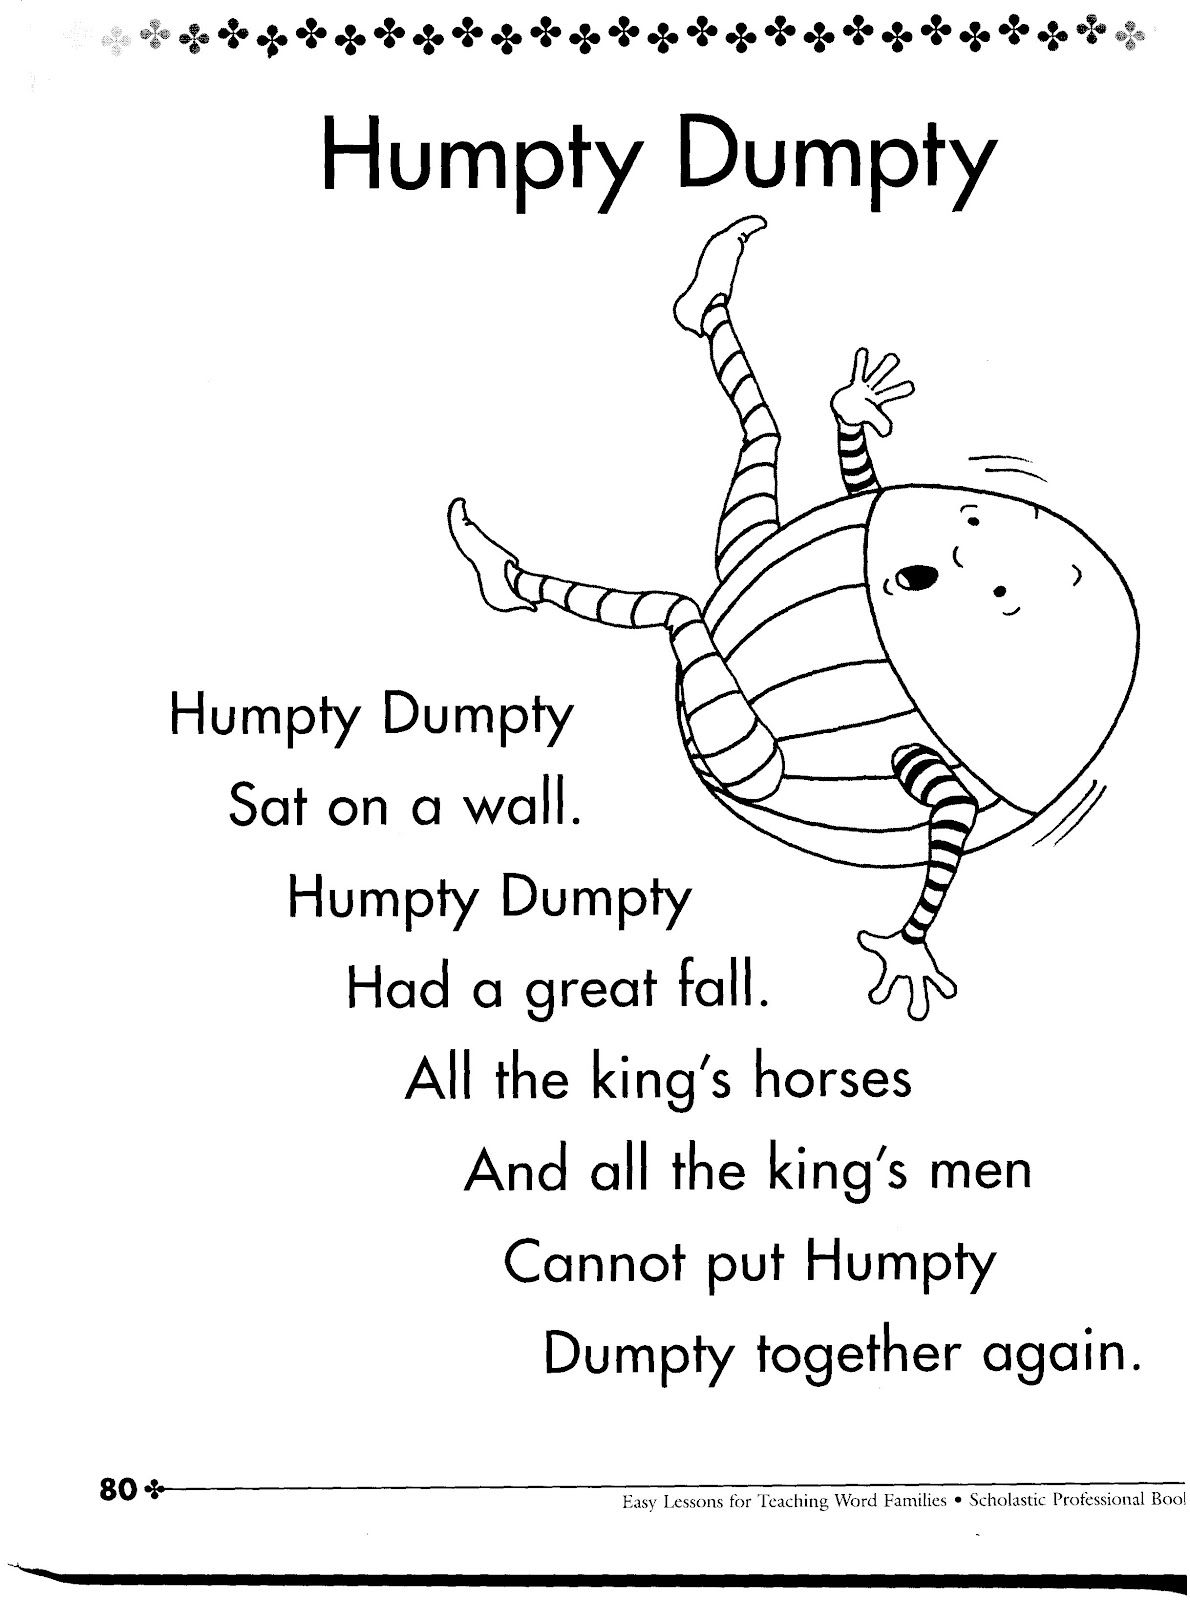 A rhyme is a repetition of similar sounds in two or more words  worksheets for teachers, free worksheets, multiplication, and printable worksheets Humpty Dumpty Worksheet 1600 x 1190